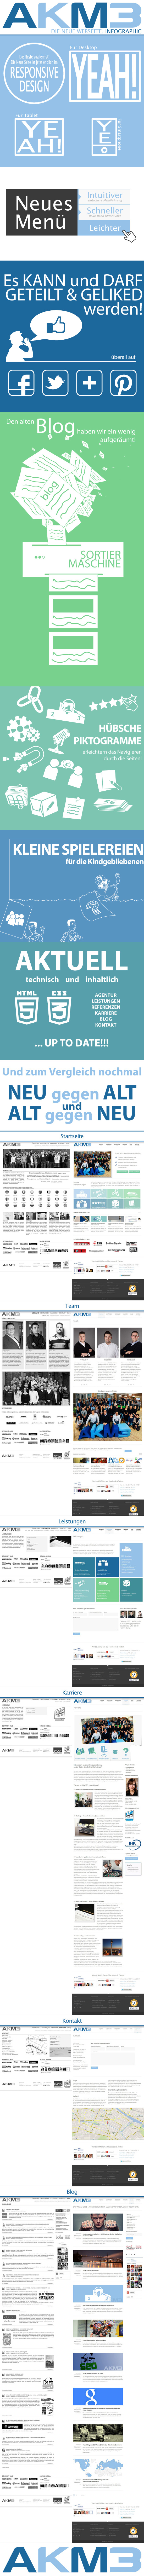 Infografik AKM3 neue Website